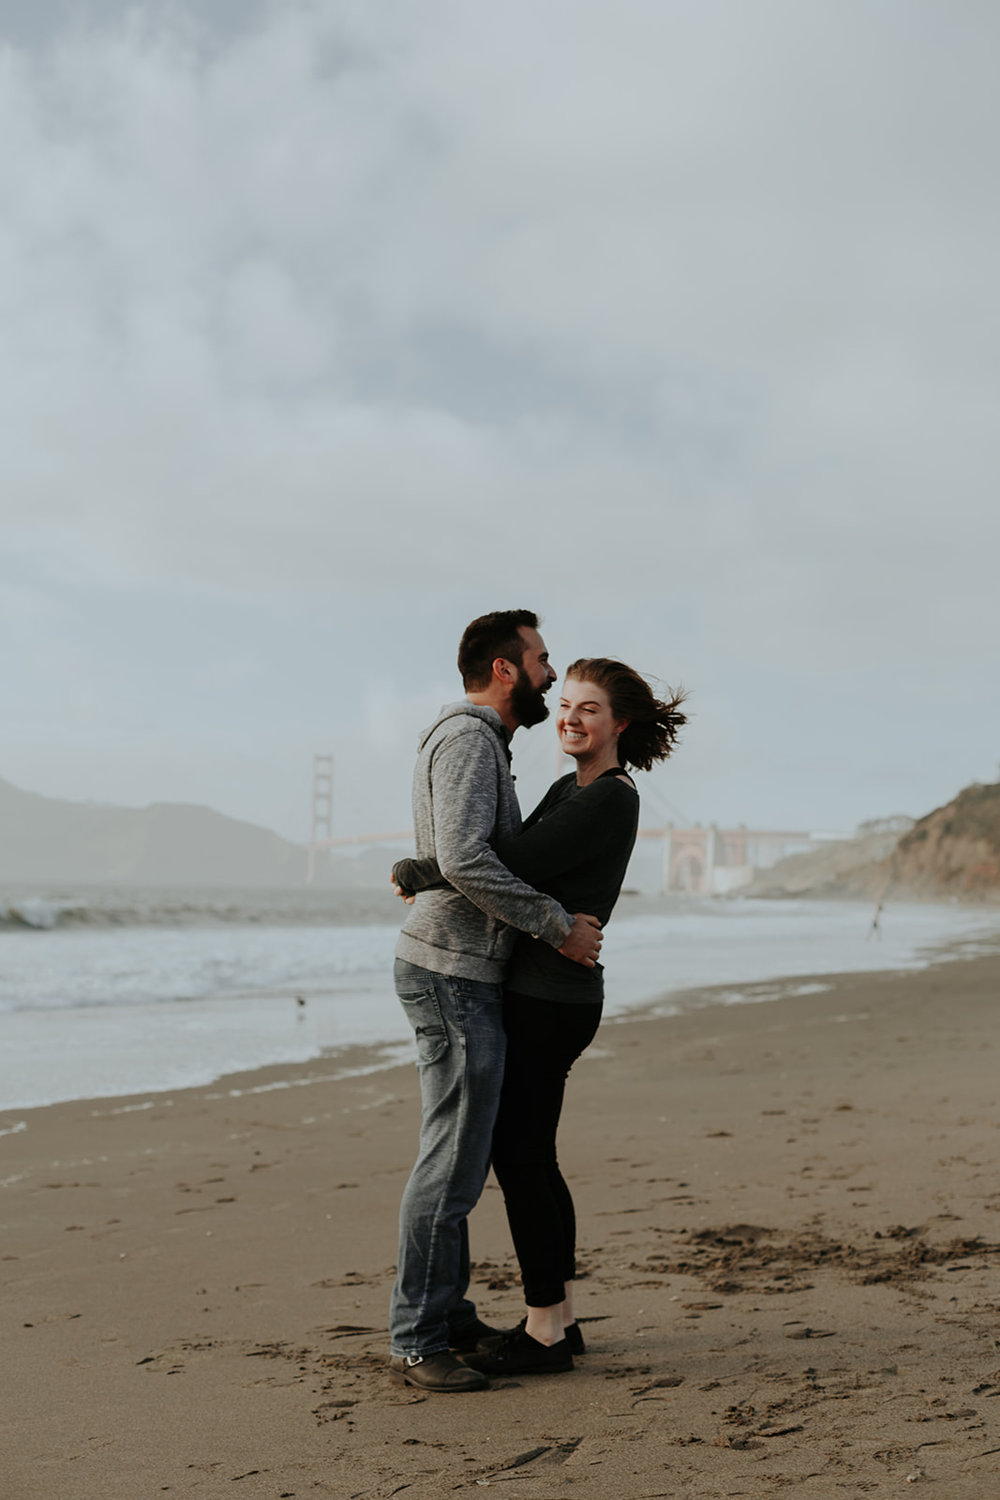 Rachel-and-Duncan-sanfran-engagement-session-earthbelowphoto-2018-40.jpg